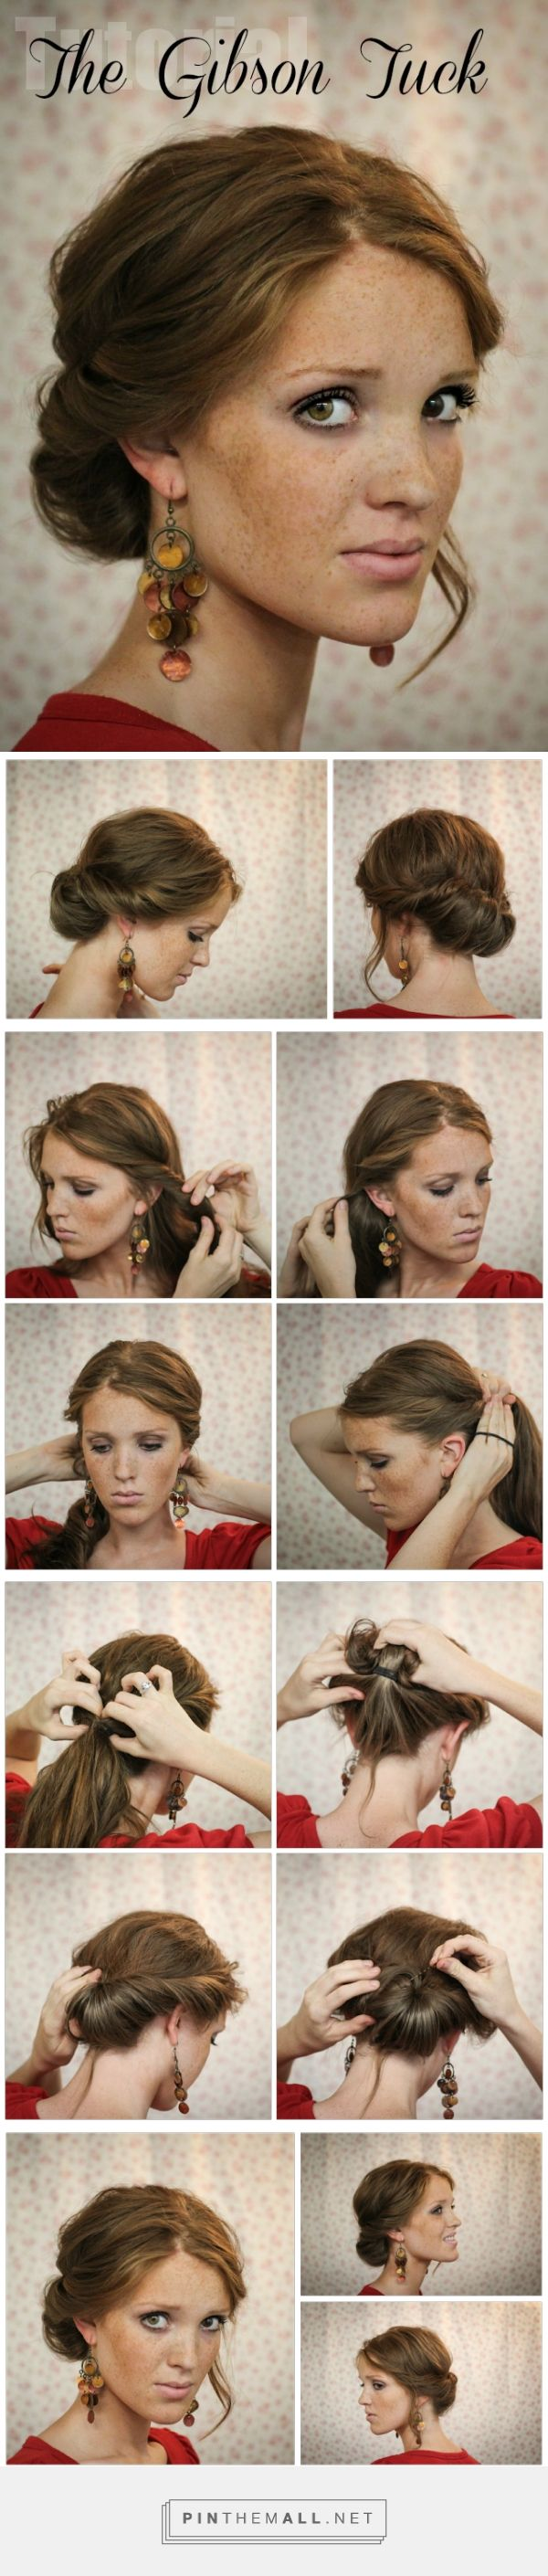 The freckled fox hair tutorial the gibson tuck a grouped